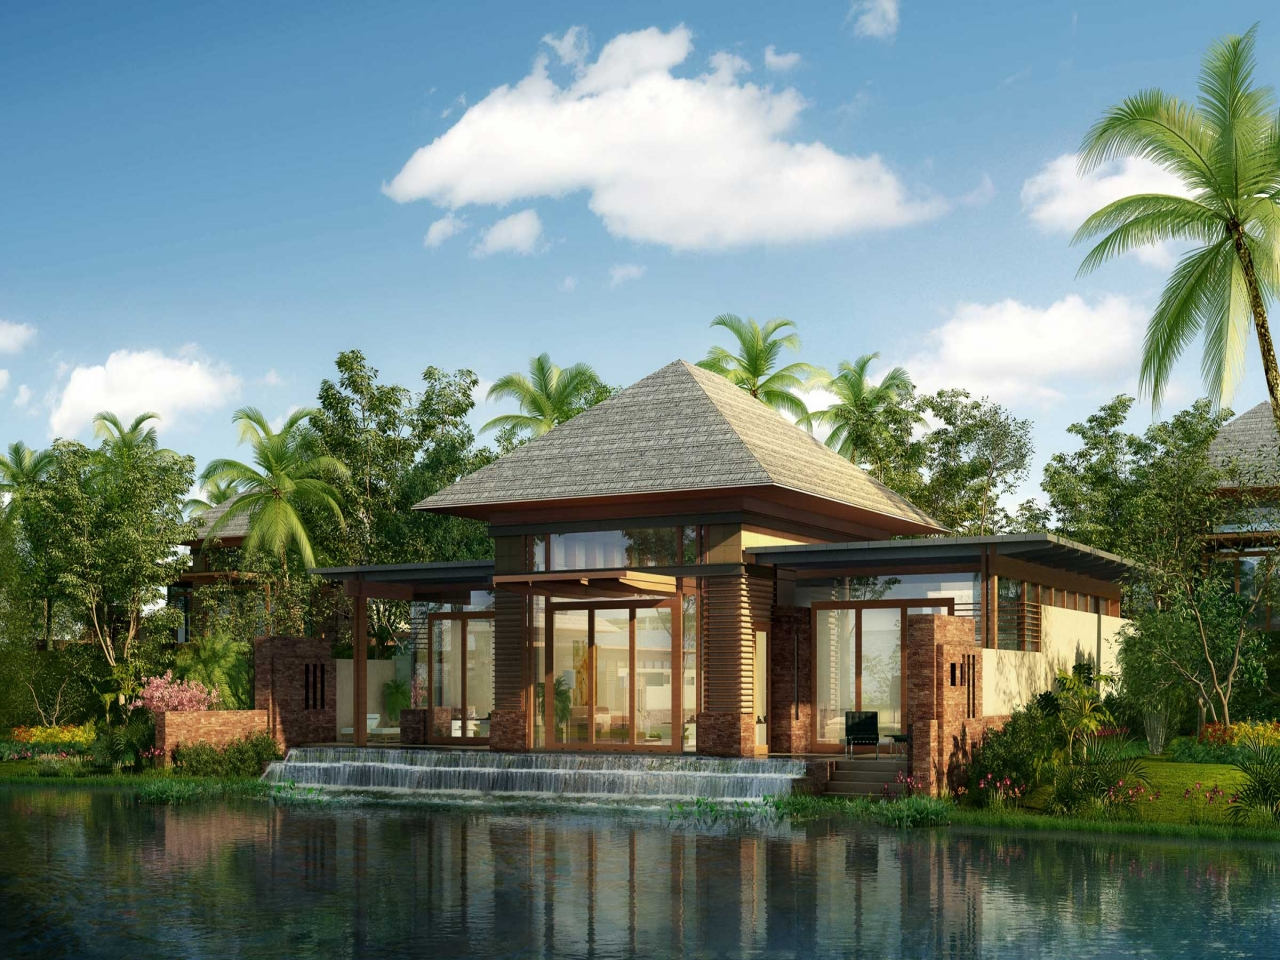 Luxury Tropical Resorts Tropical All Inclusive Resorts Resort House Plans